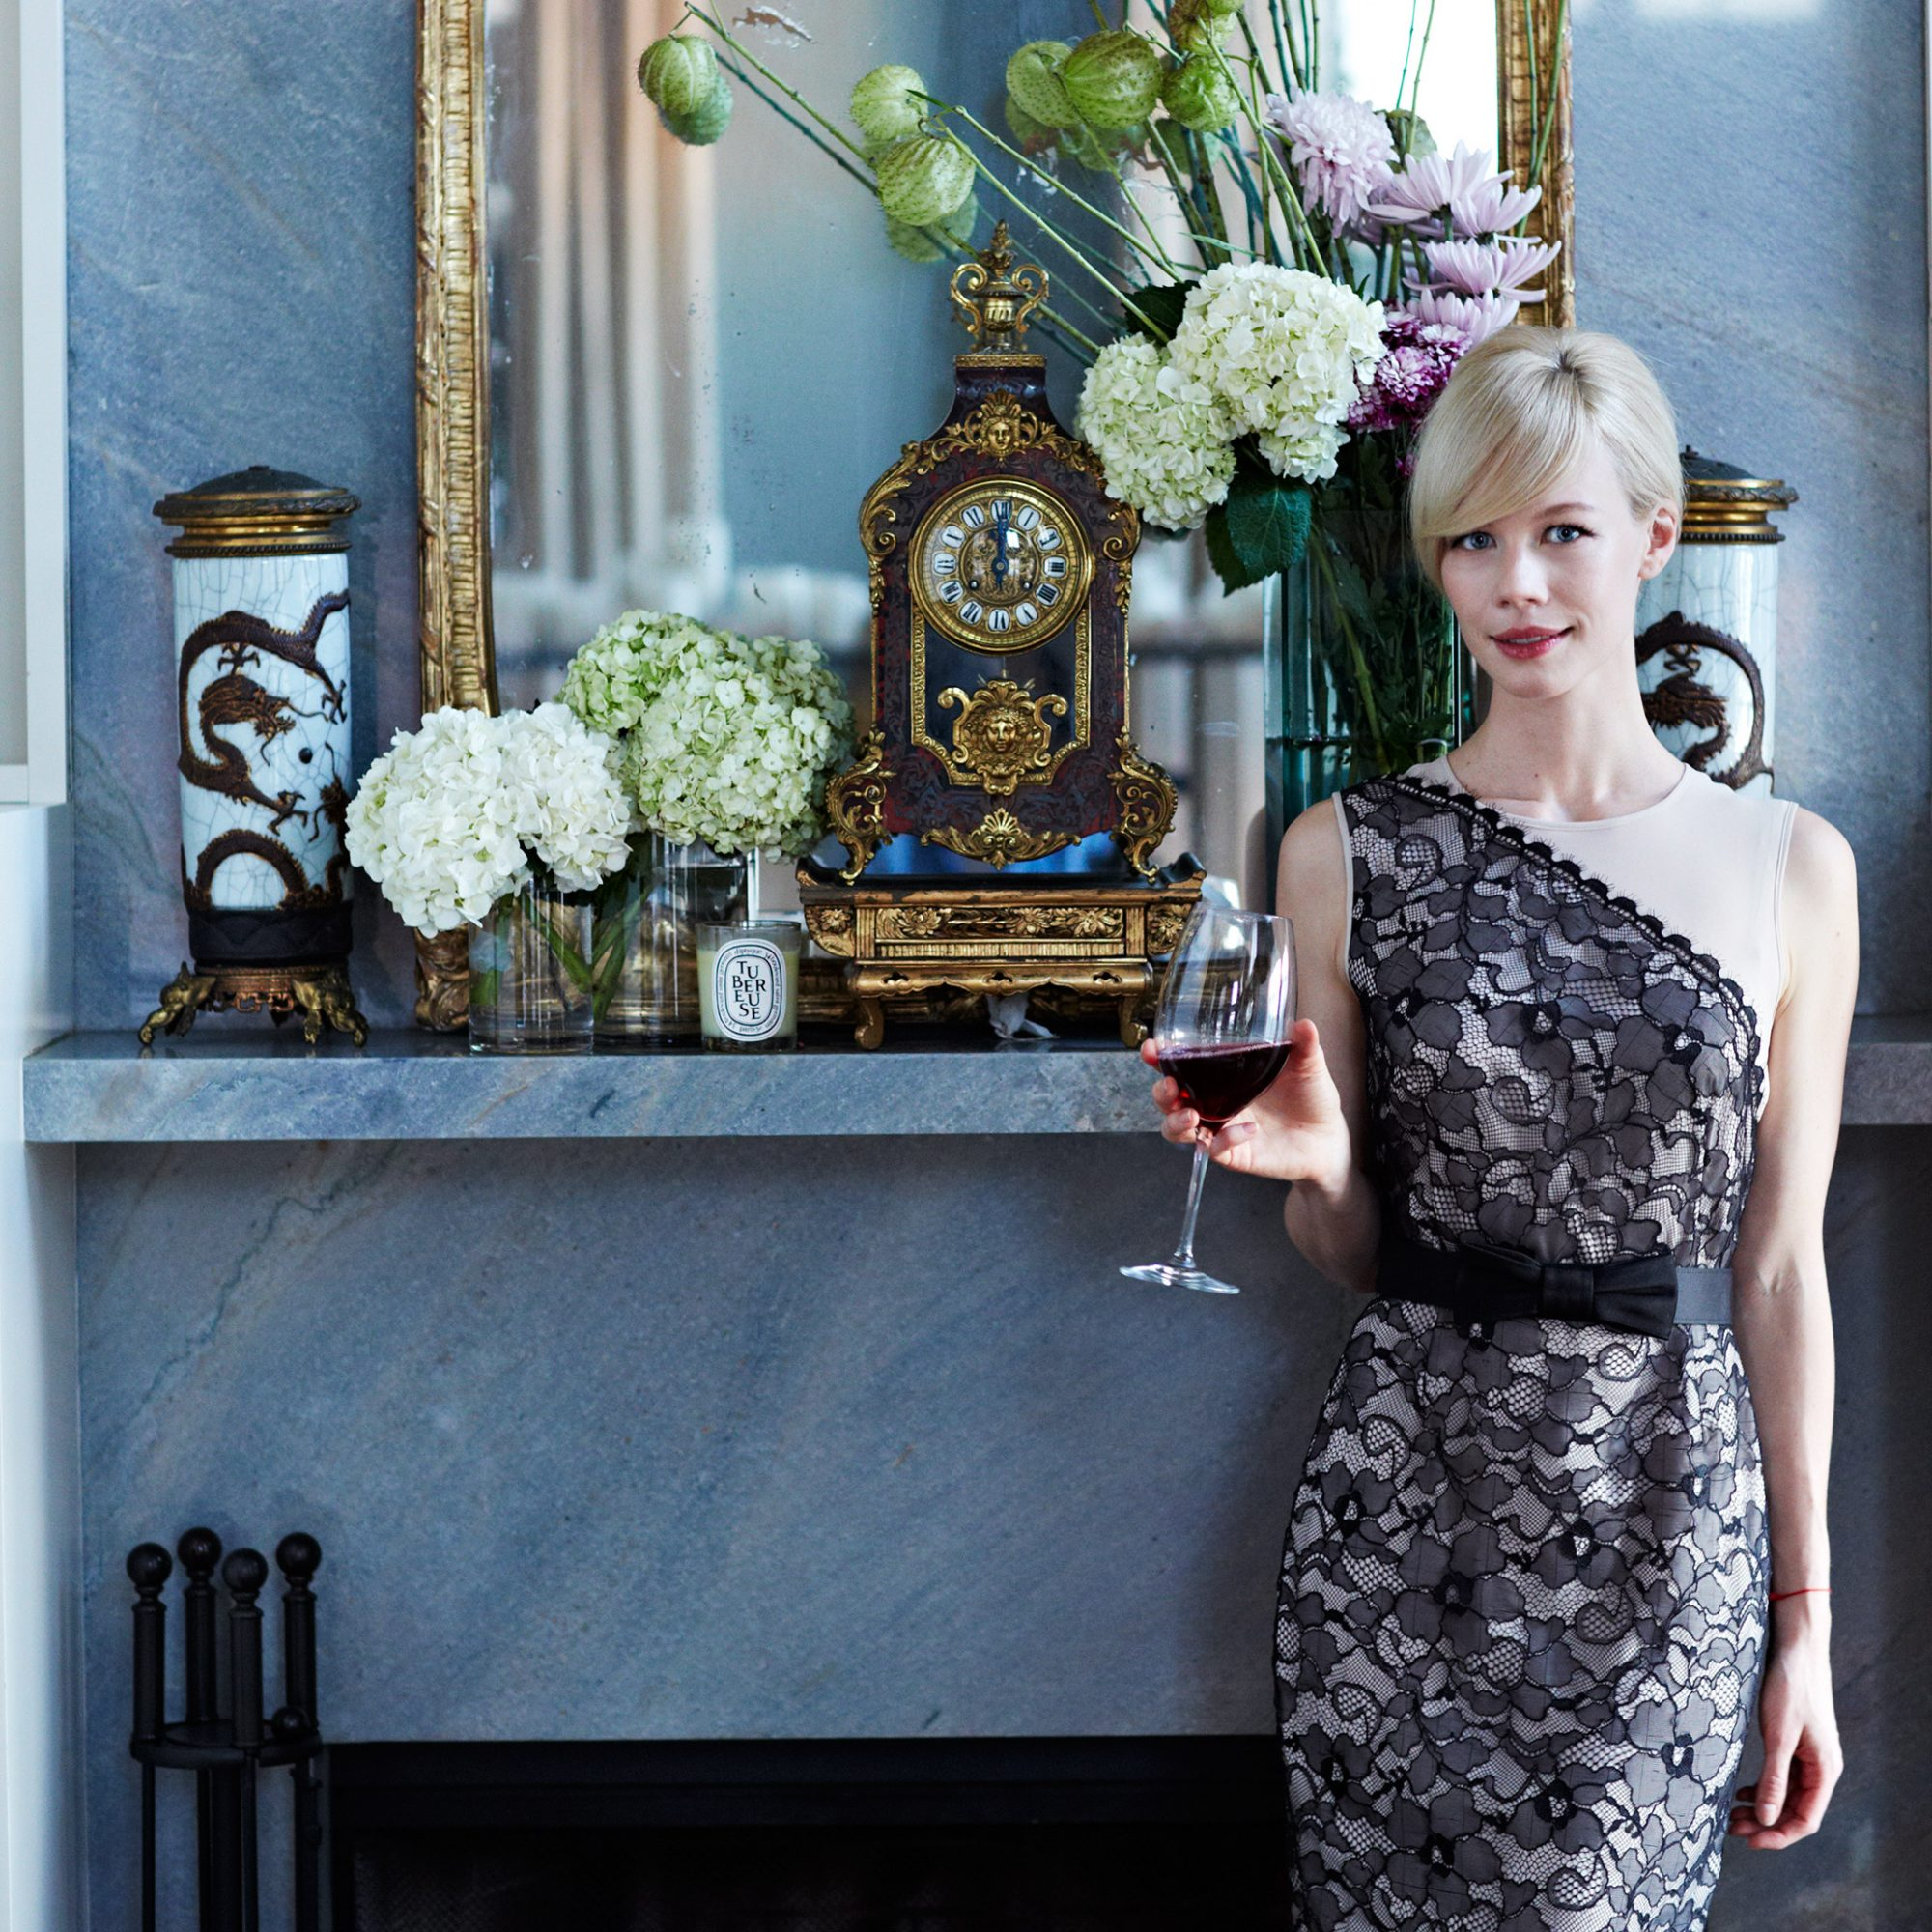 Erin Fetherstonu0027s Tips for Hosting the Perfect